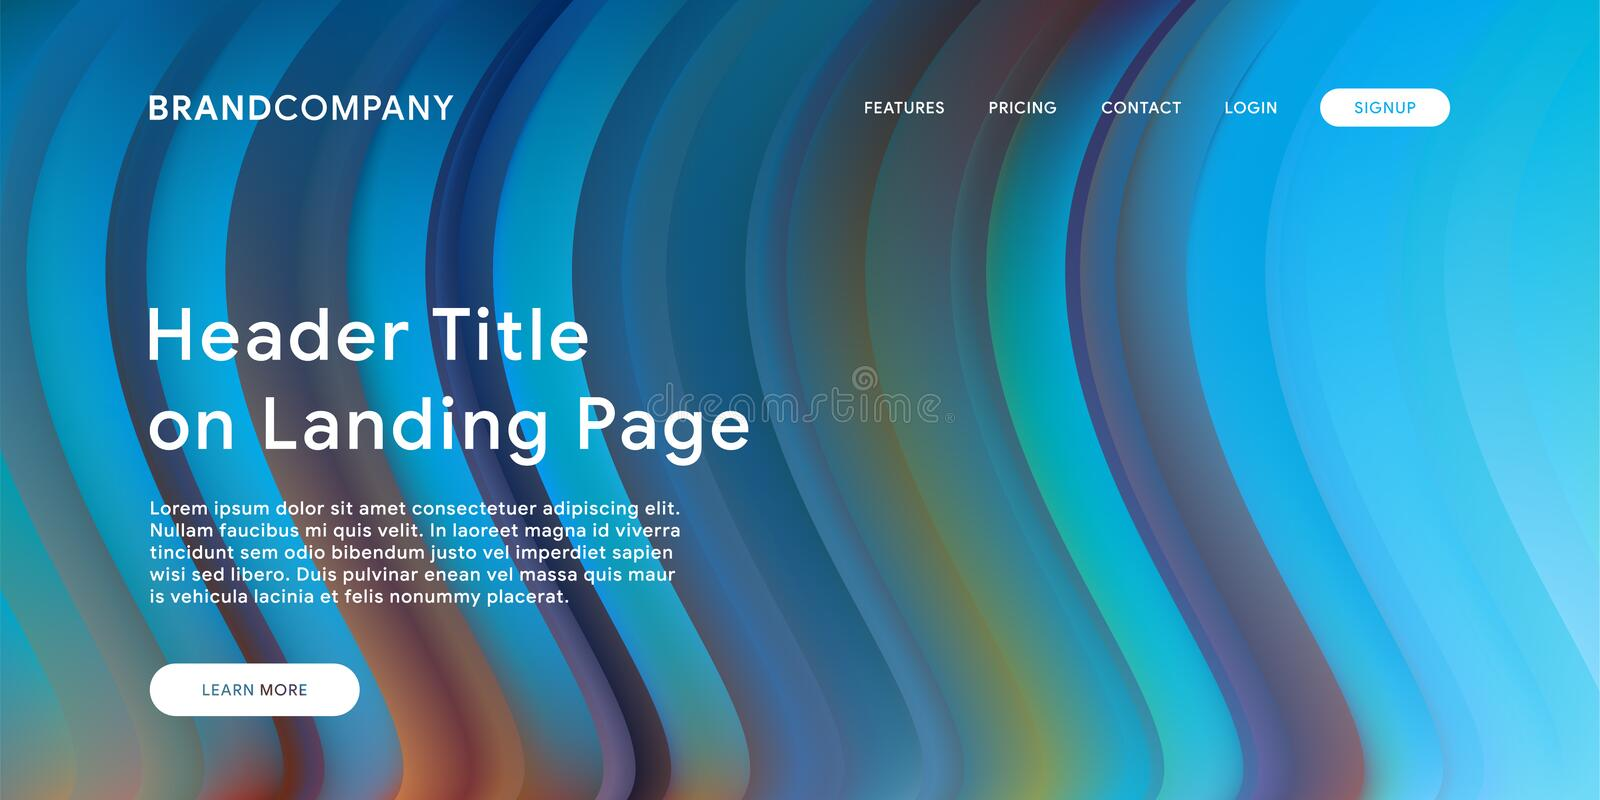 Creative design with fluid colorful shapes. Trendy color gradients. Strip design. Fluid shapes composition. Futuristic design. Landing page template royalty free illustration